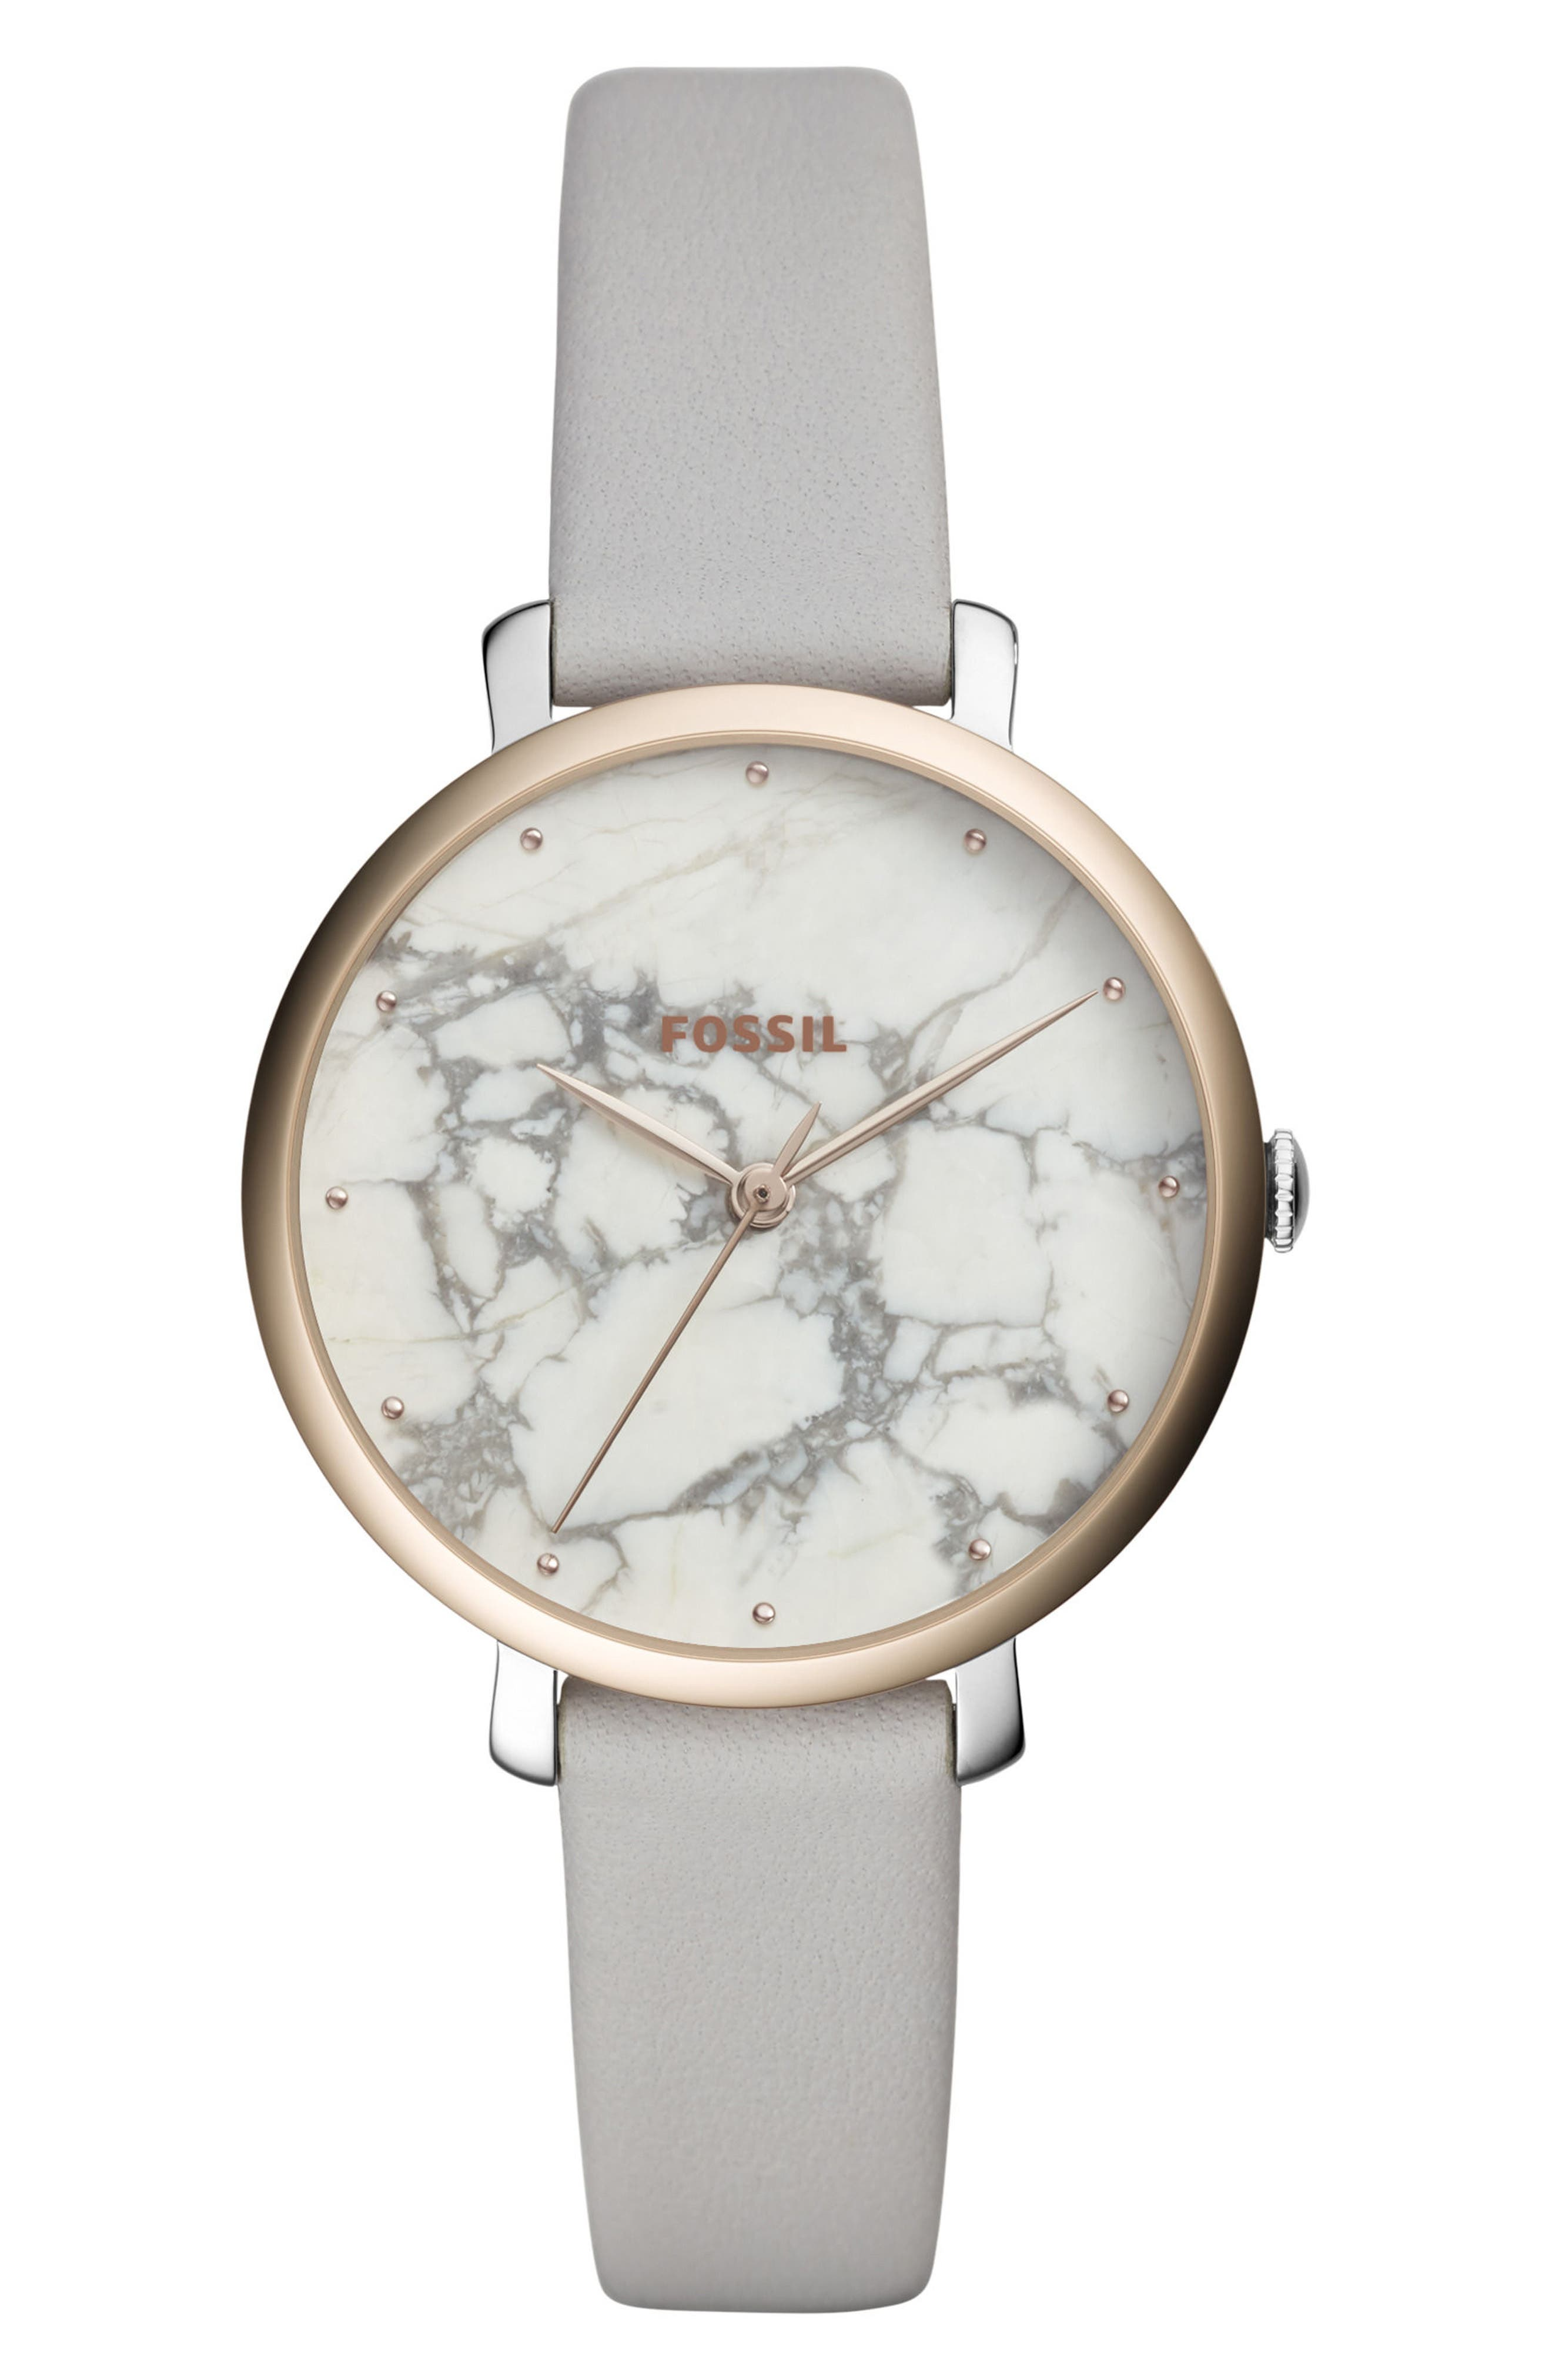 FOSSIL, Jacqueline Stone Dial Leather Strap Watch, 36mm, Main thumbnail 1, color, GRAY/ WHITE/ SILVER